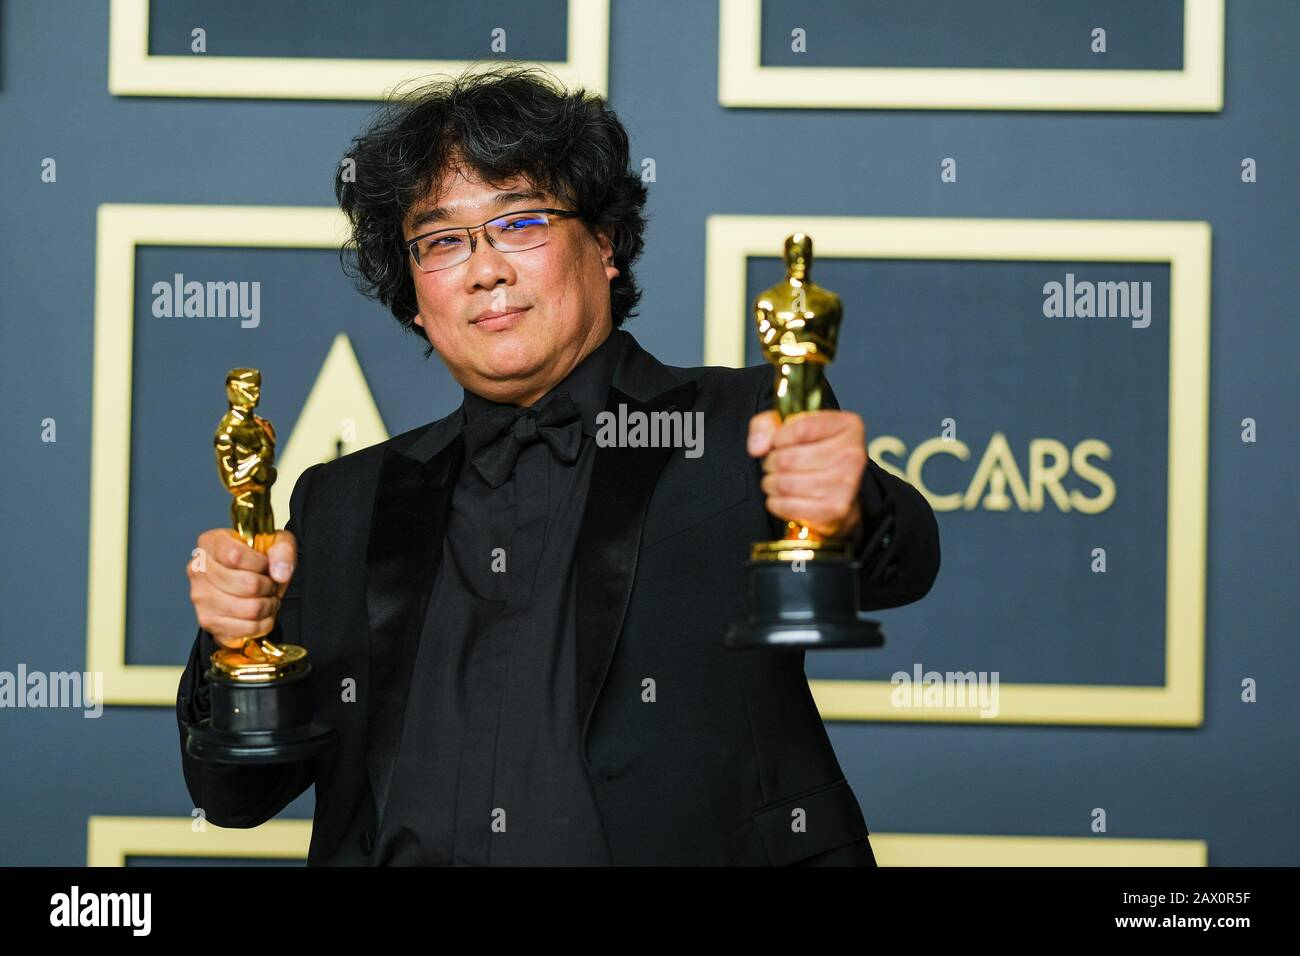 Hollywood, California, USA. 9th Feb, 2020. Dolby Theatre at the Hollywood & Highland Center, Hollywood, UK. 9th Feb, 2020. Bong Joon Ho poses with the Oscar for Best Picture in the film Parasite during the the 92nd Academy Awards, 2020 . Picture by Credit: Julie Edwards/Alamy Live News Stock Photo